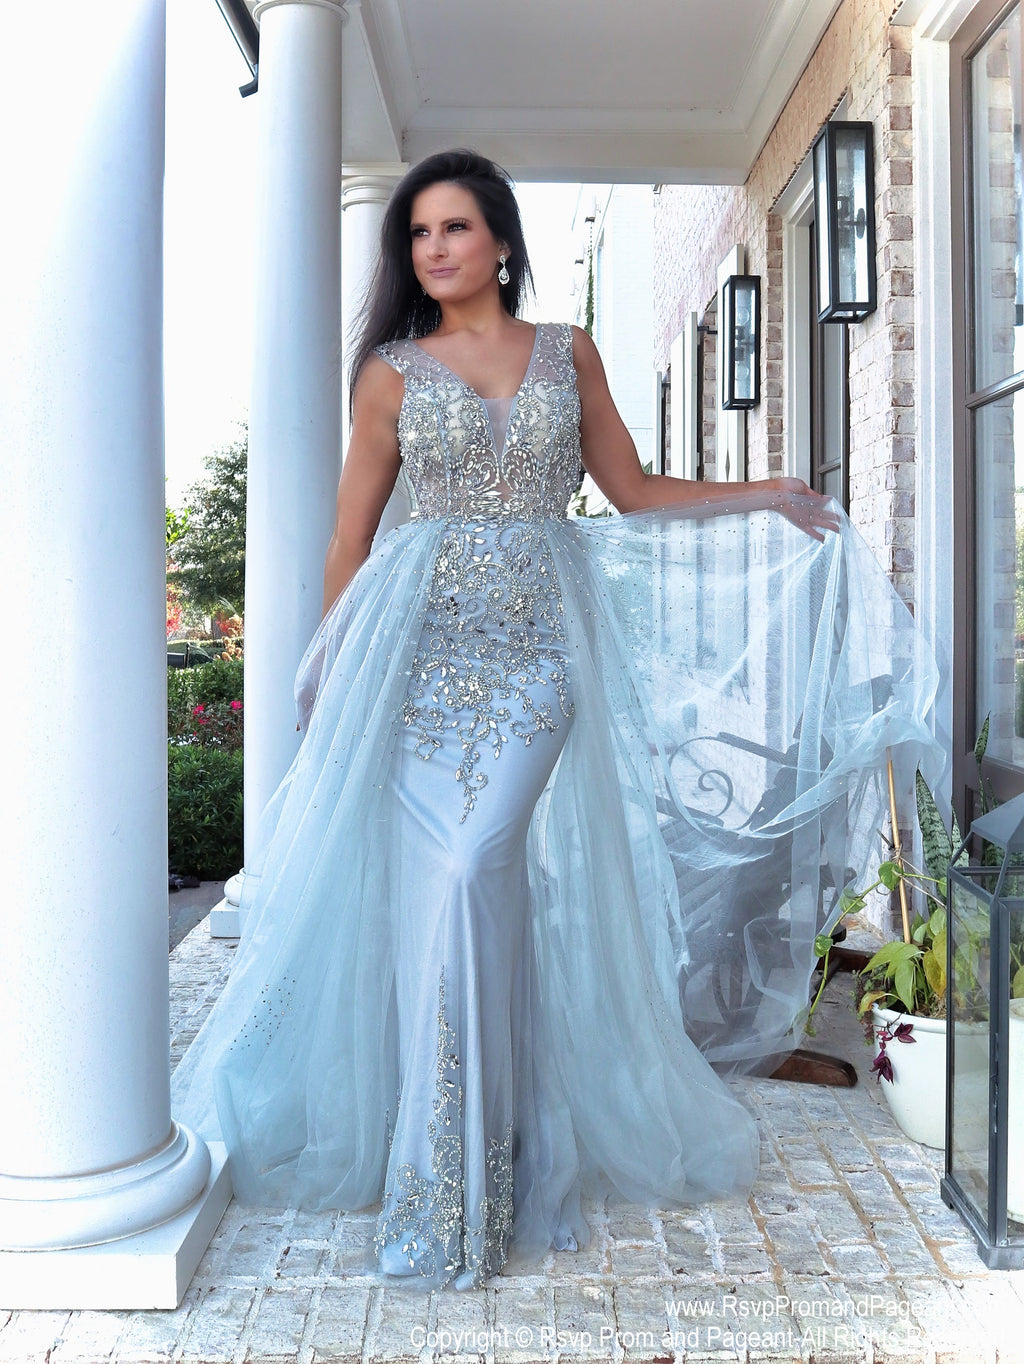 model in this stunning beaded evening gown that comes with an open back and a tulle overlay skirt that is perfect for strutting your stuff! Perfect for prom or pageant or any formal event! And it's at Rsvp Prom and Pageant, your source for the HOTTEST Prom and Pageant Dresses and exclusive evening gowns and located in Atlanta, Georgia!